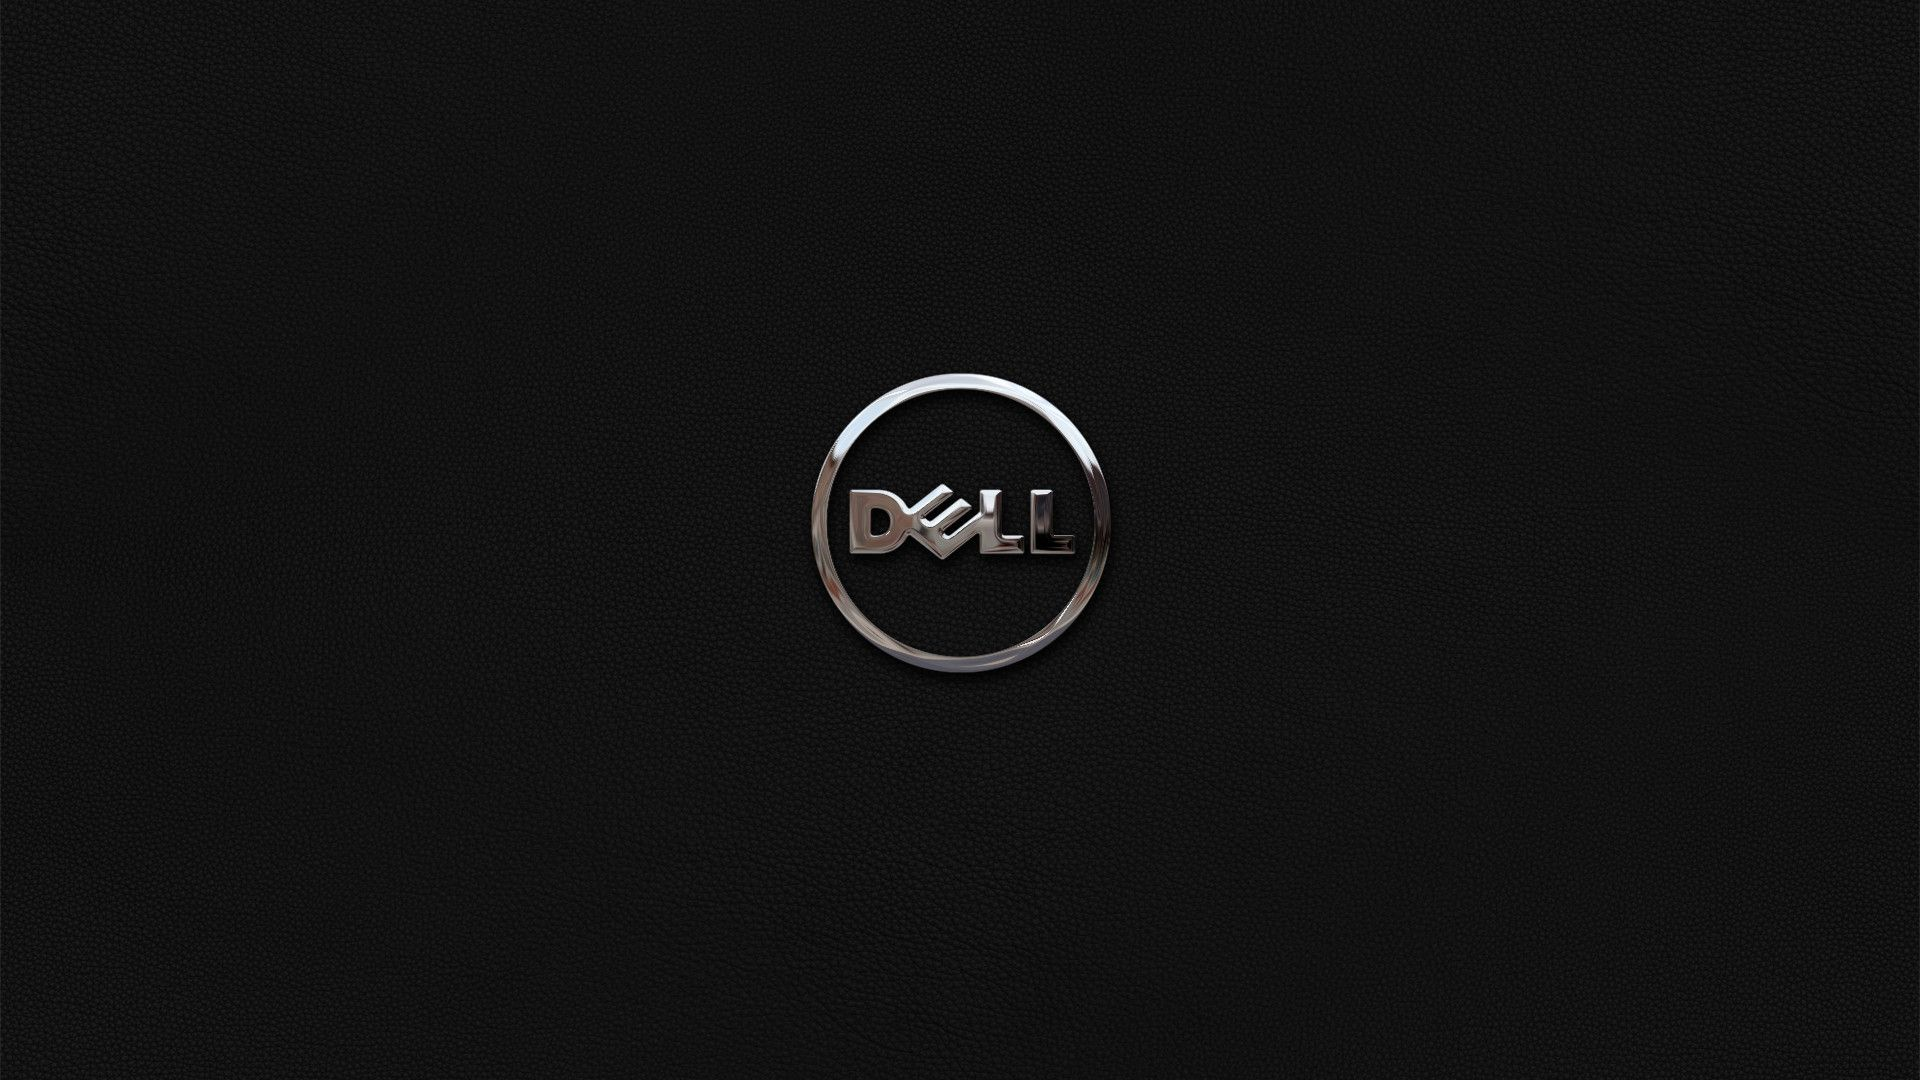 0x0 Dell Wallpapers 4k 33+ - Page 2 of 3 - dzbc.org